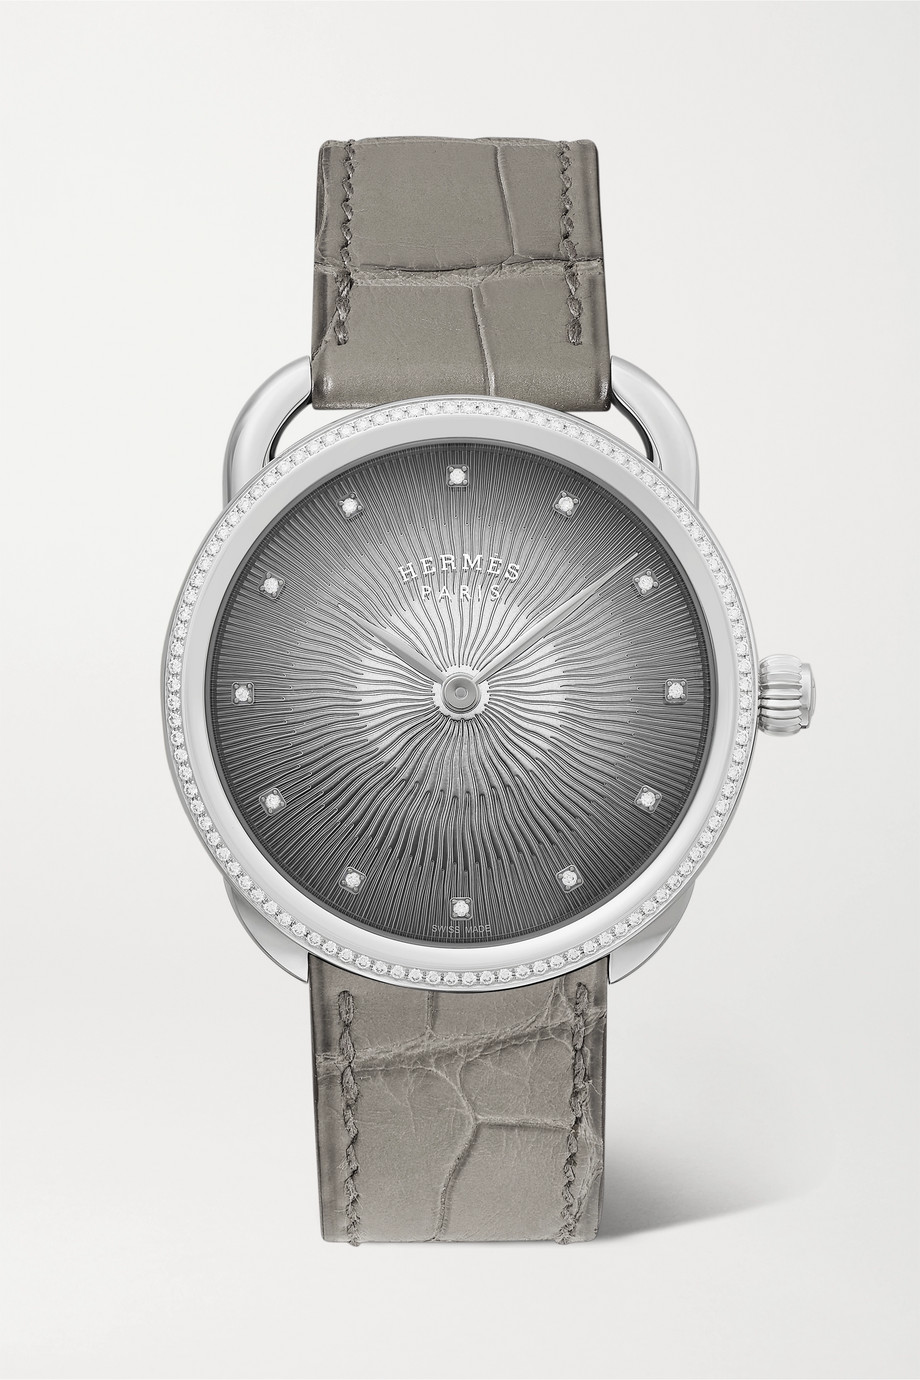 HERMÈS TIMEPIECES Arceau Soleil 36mm medium stainless steel, alligator and diamond watch